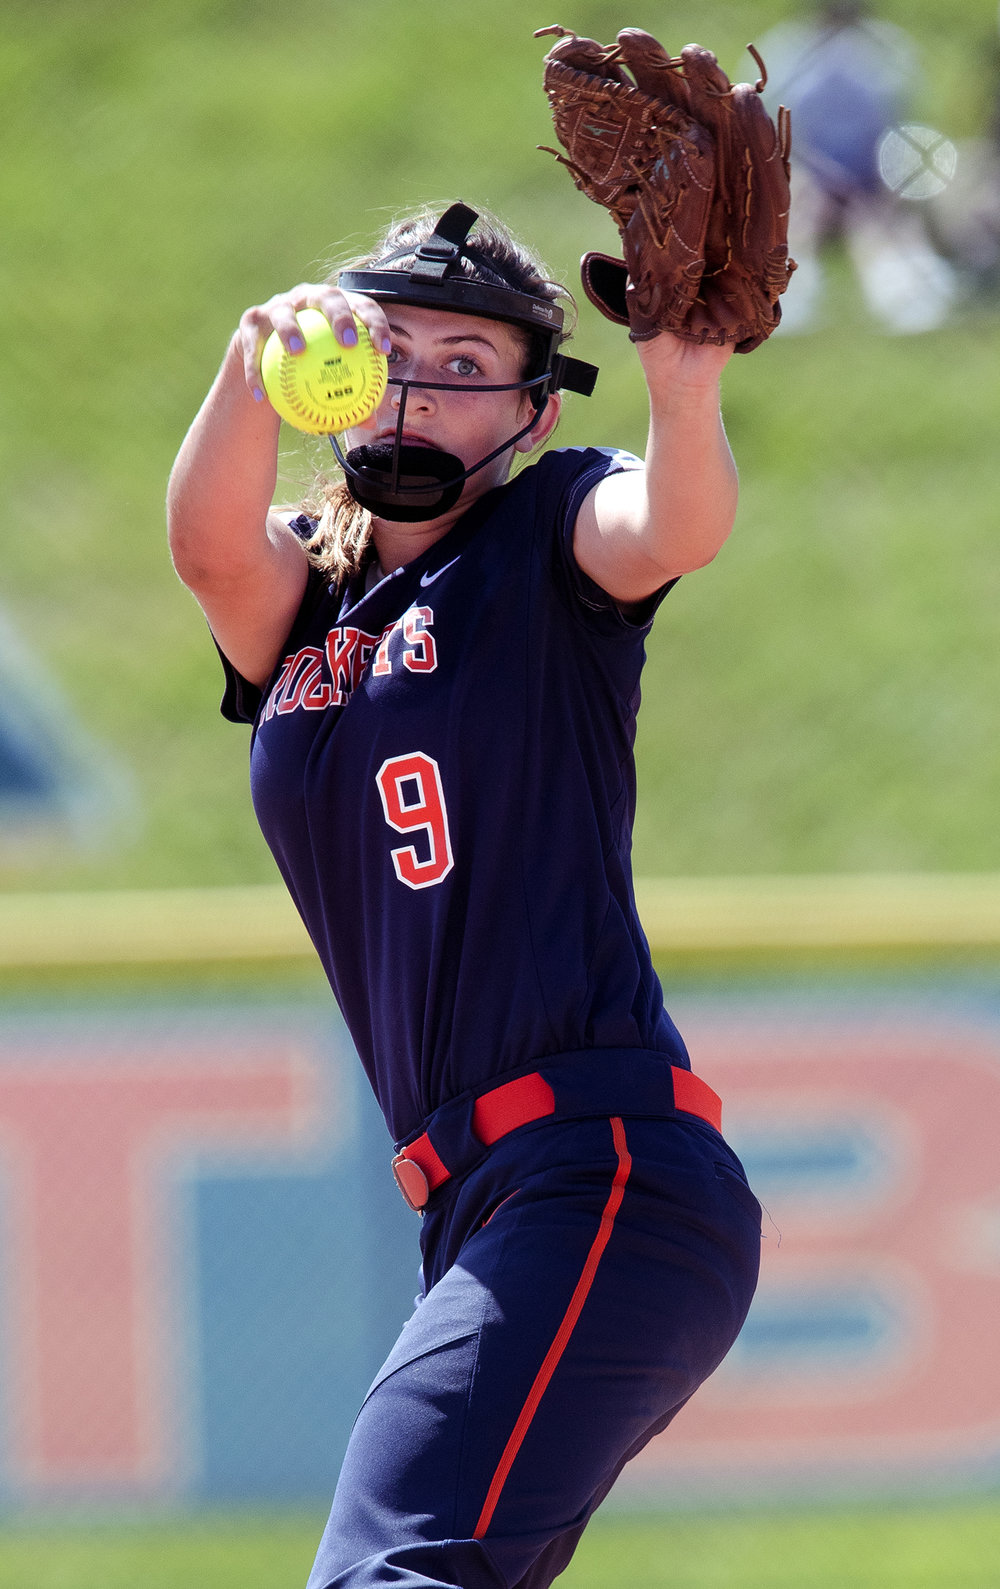 Rochester's Reagan Miles winds up against East Peoria during the Class 3A state semifinal game at the Eastside Centre Friday, June 9, 2017. [Ted Schurter/The State Journal-Register]